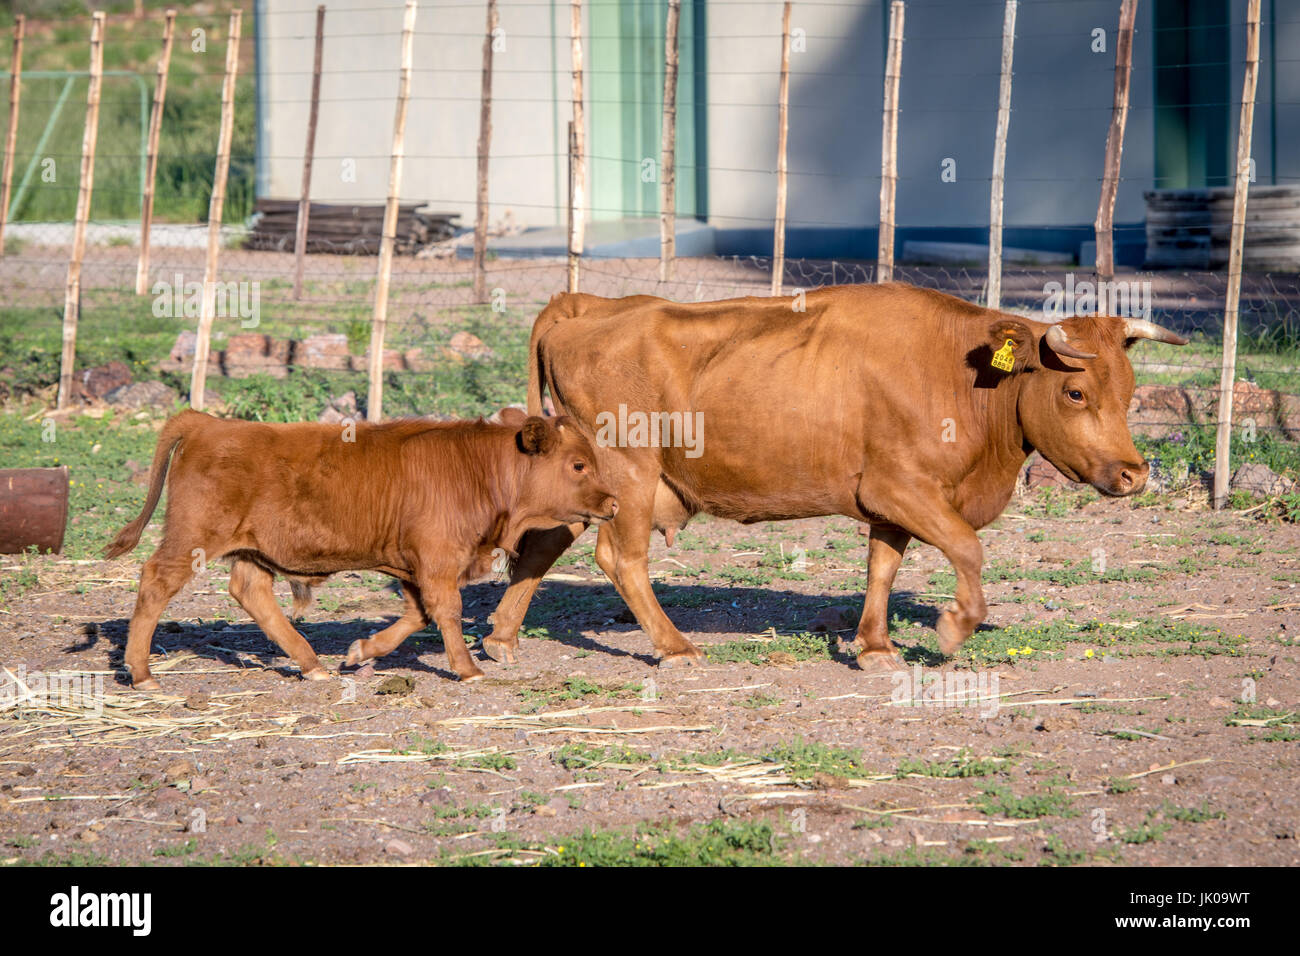 Leading Steer Stock Photos & Leading Steer Stock Images - Alamy